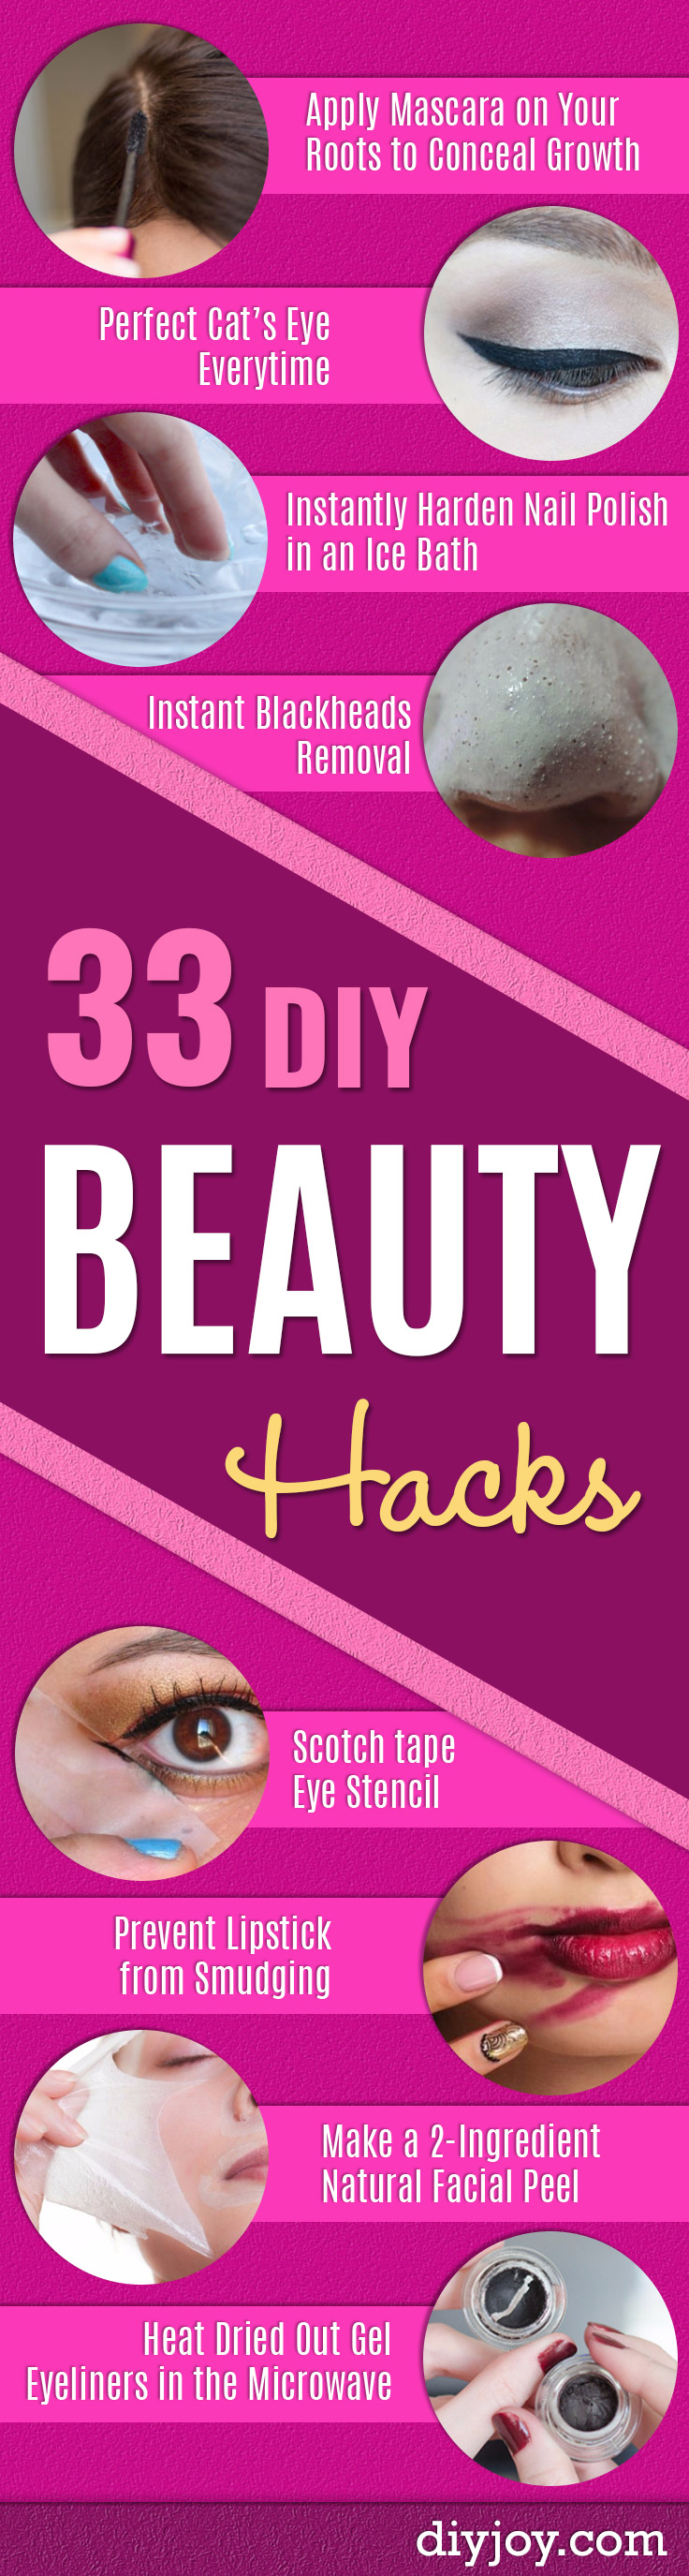 33 diy beauty hacks ping diy beauty hacks cool tips for makeup hair and nails step by step solutioingenieria Images